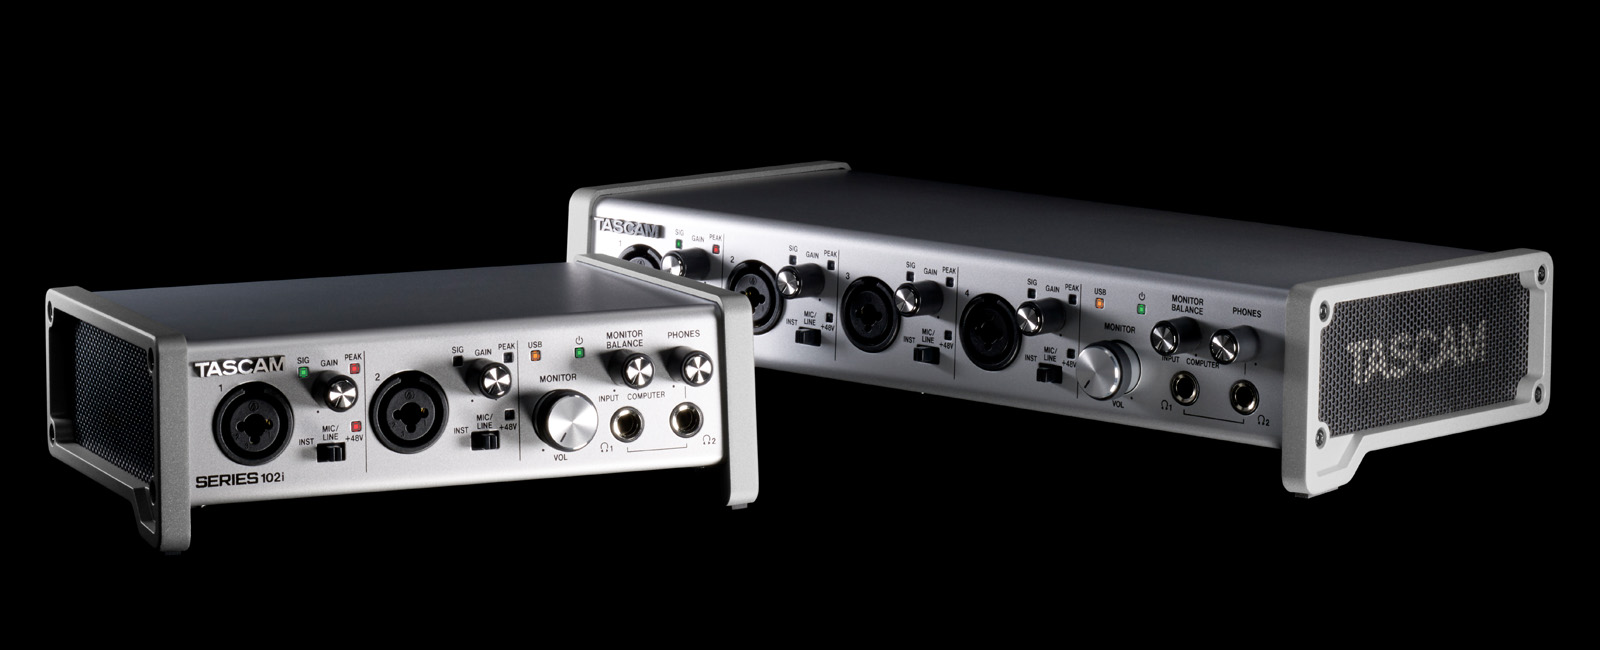 SERIES 102i, SERIES 208i TASCAM R&D Special Interview